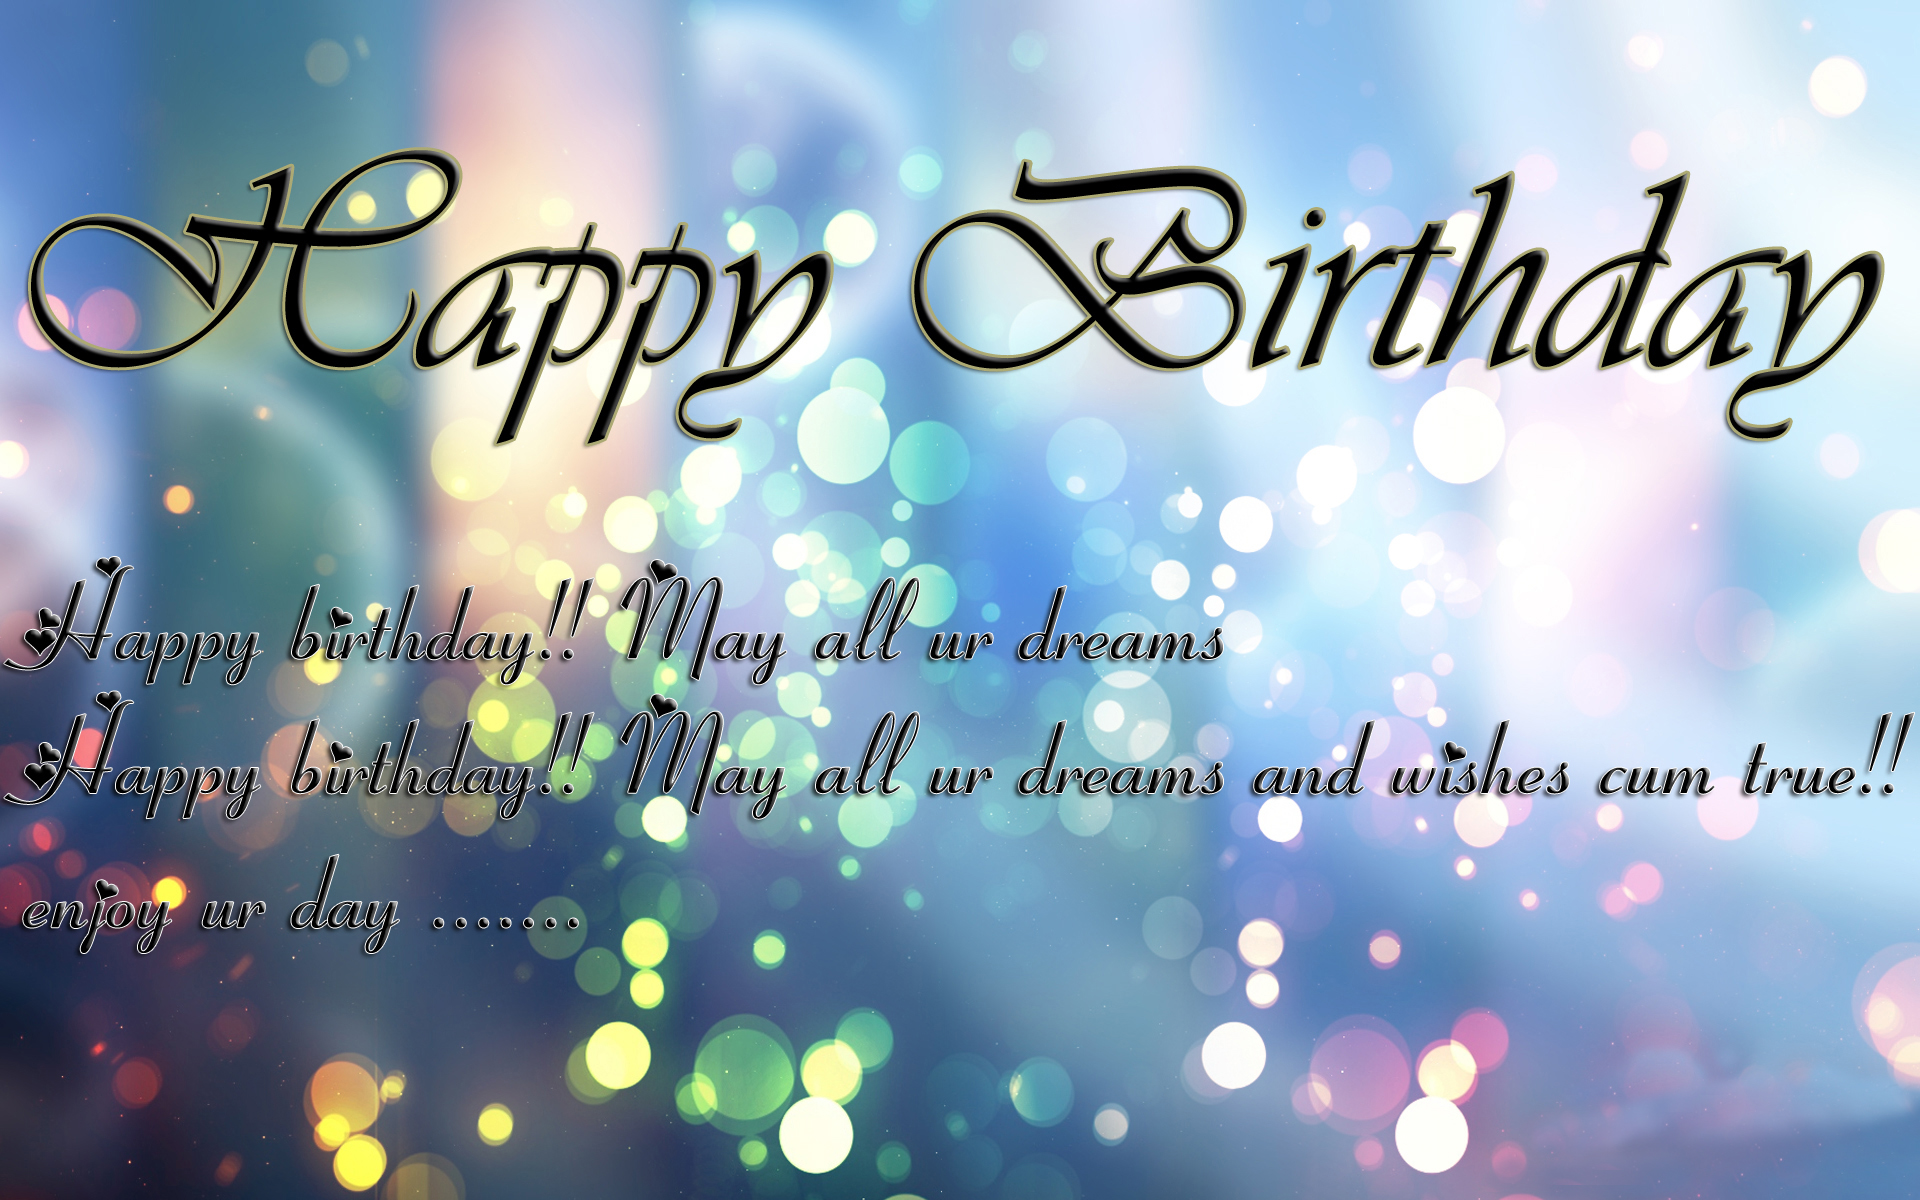 best birthday wishes and quotes ; Happy-birthday-wishes